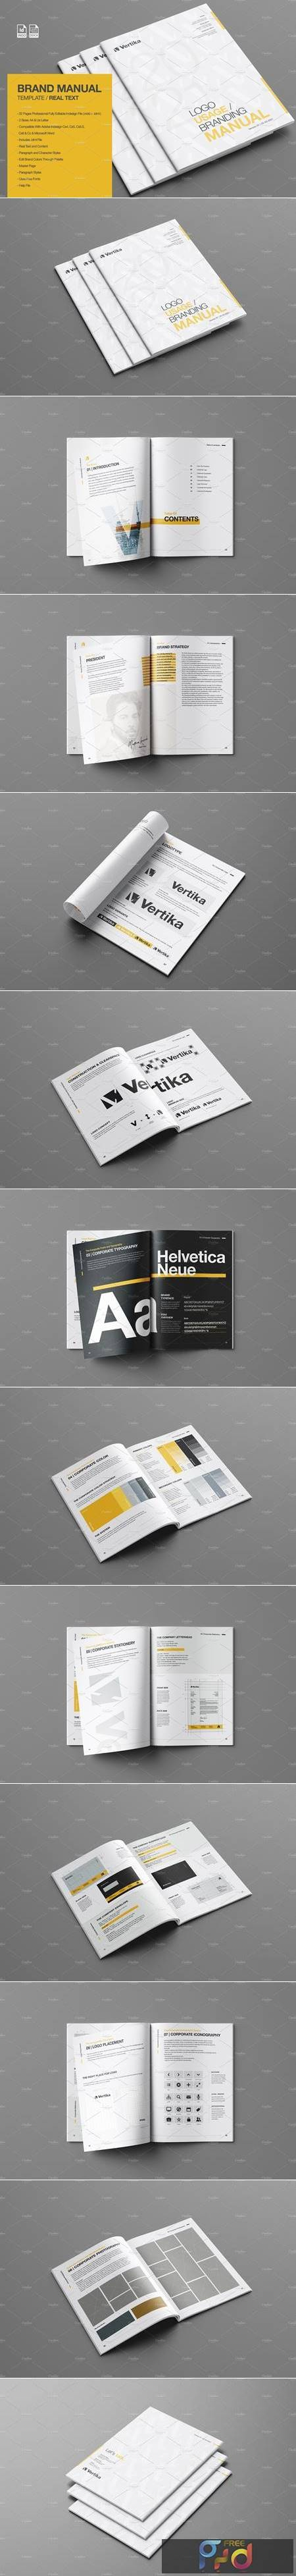 Brand Manual - REAL TEXT 4653146 1